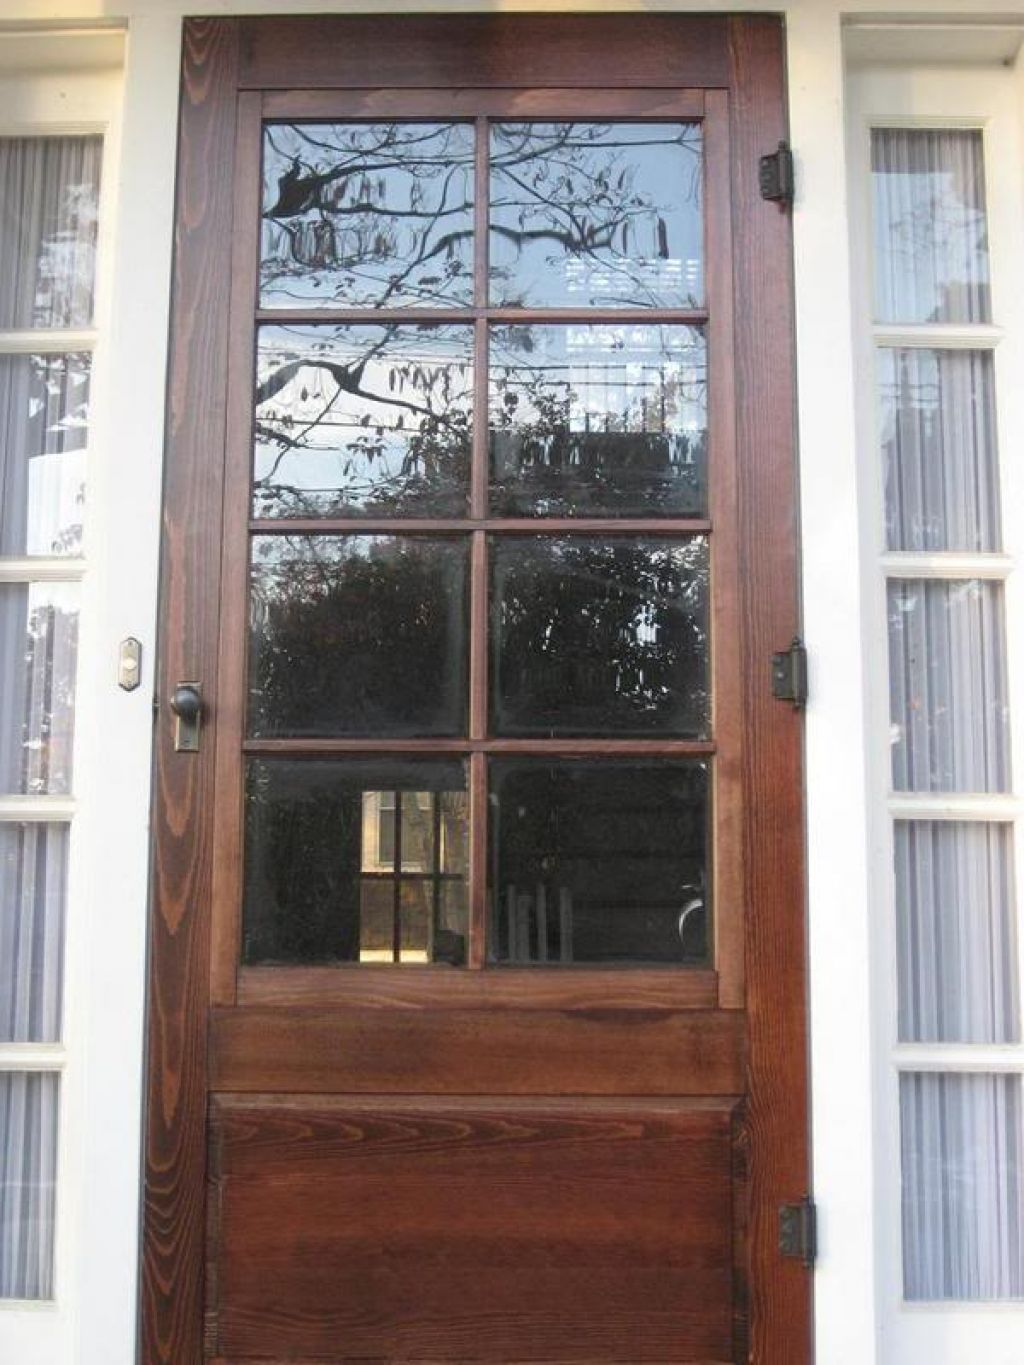 Vintage Styled Wood Storm Door With Solid Teak Wood Material Built In And Using Clear Glass For The Door Wooden Screen Door Wood Storm Doors Glass Storm Doors